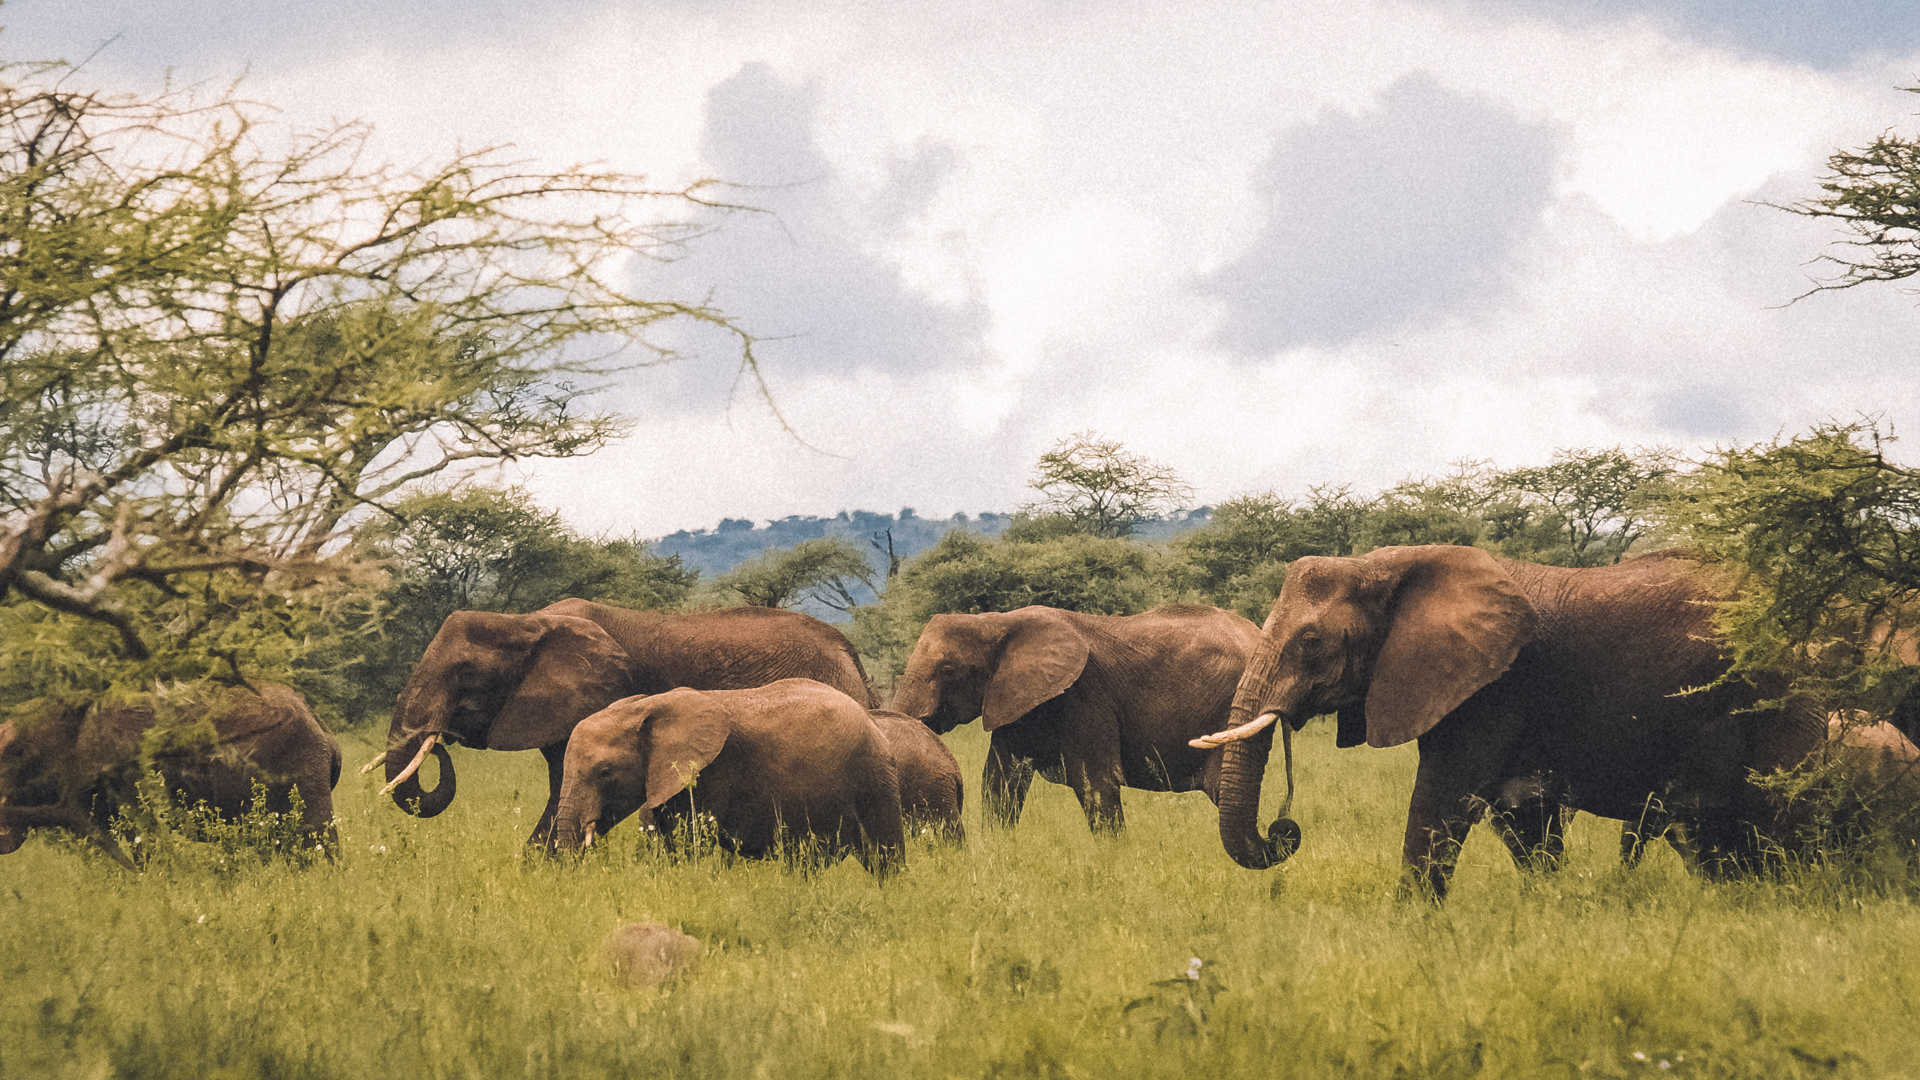 A herd of African savanna elephant passing us in the Serengeti National Park, Tanzania